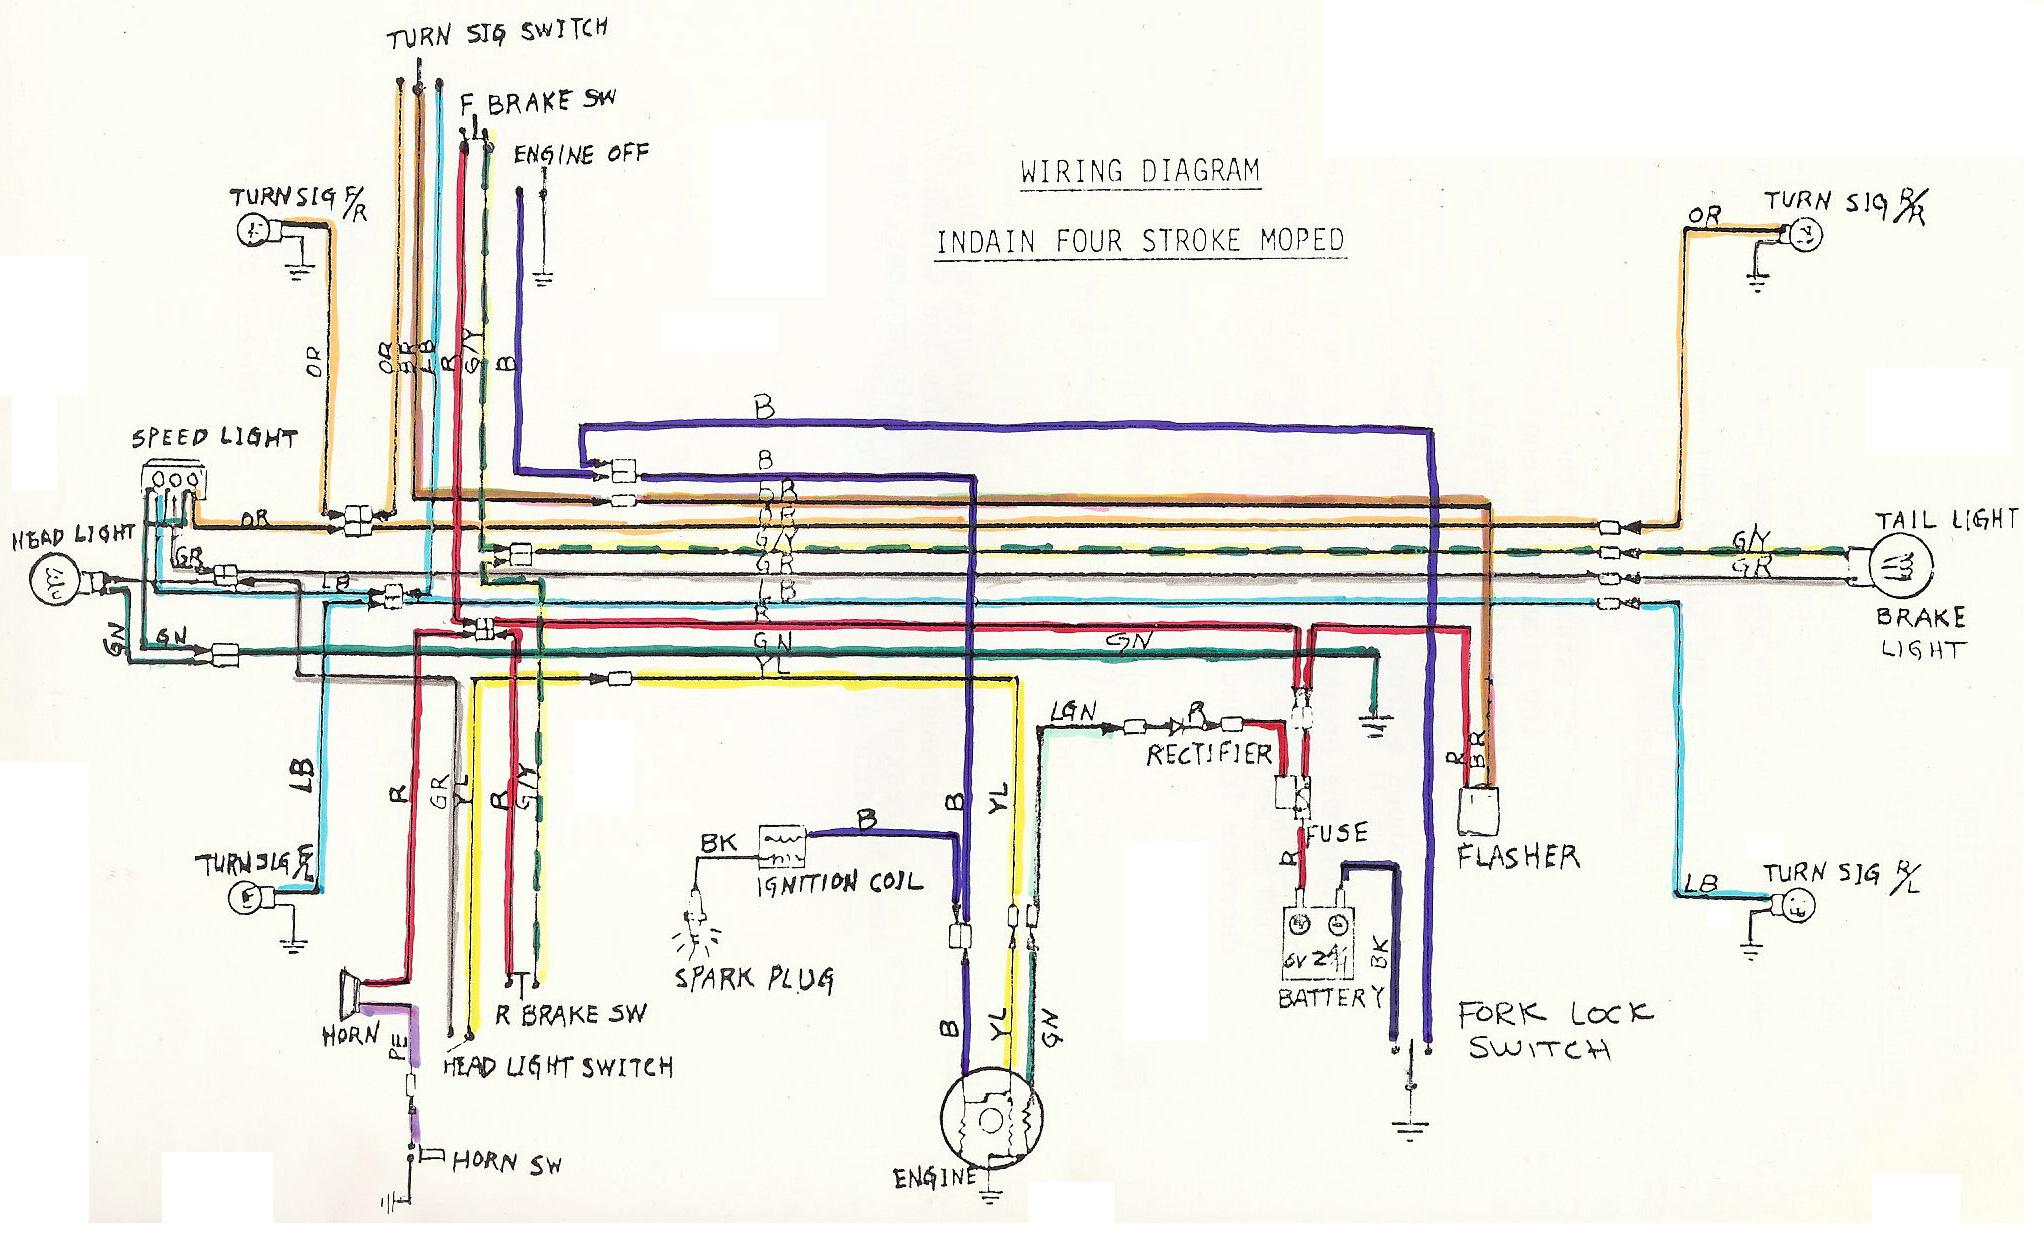 india home electrical wiring diagrams get free image Residential Electrical Wiring Diagrams Basic Electrical Wiring Diagrams